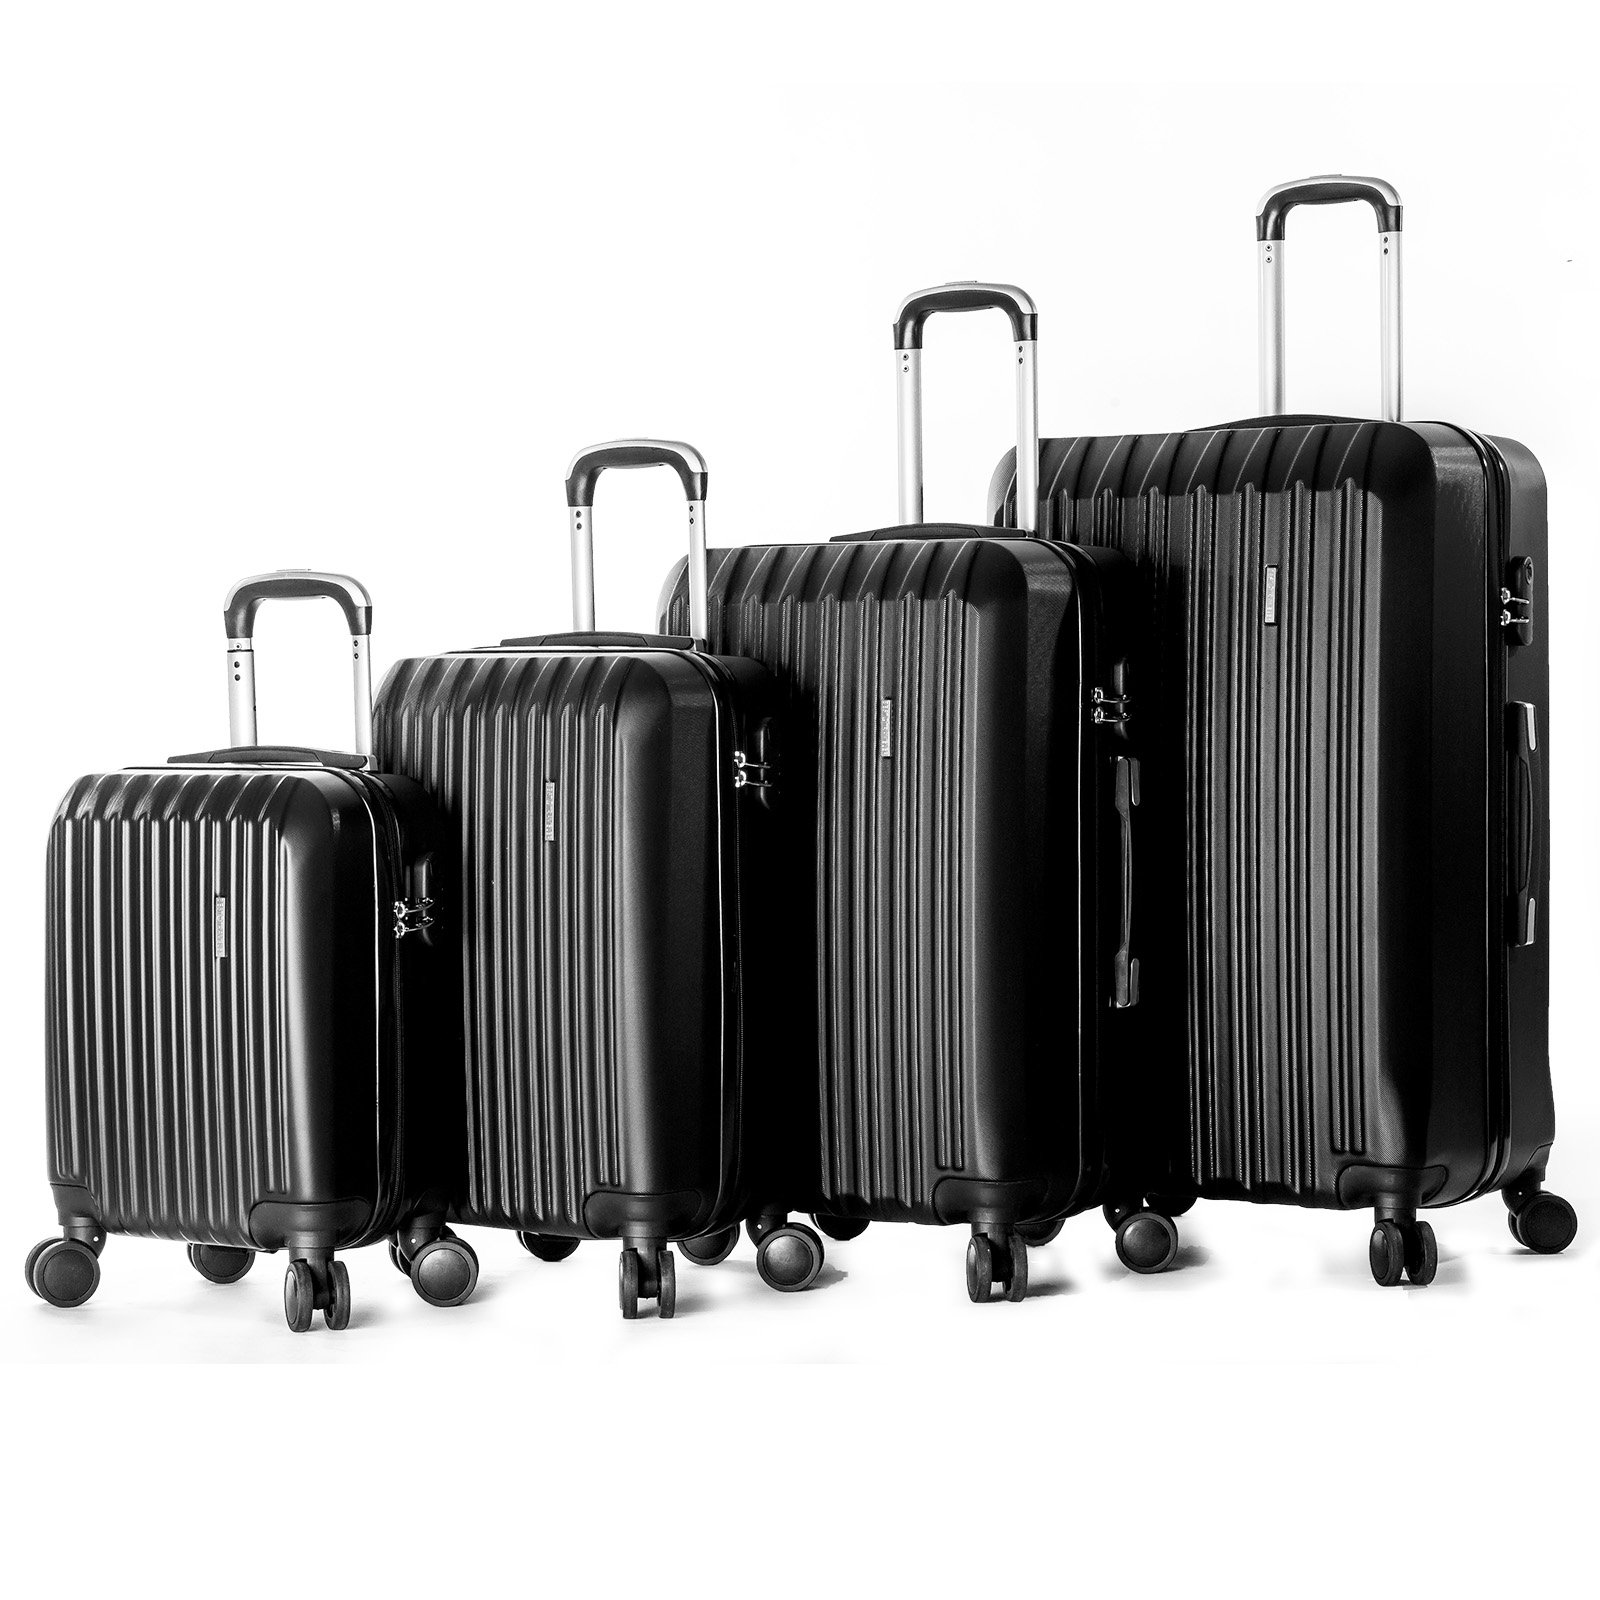 BEST TRAVEL 4 Piece ABS Luggage Set Light Travel Case w/Spinner Hardshell Suitcase-16'' 20'' 24'' 28'' by idealchoiceproduct